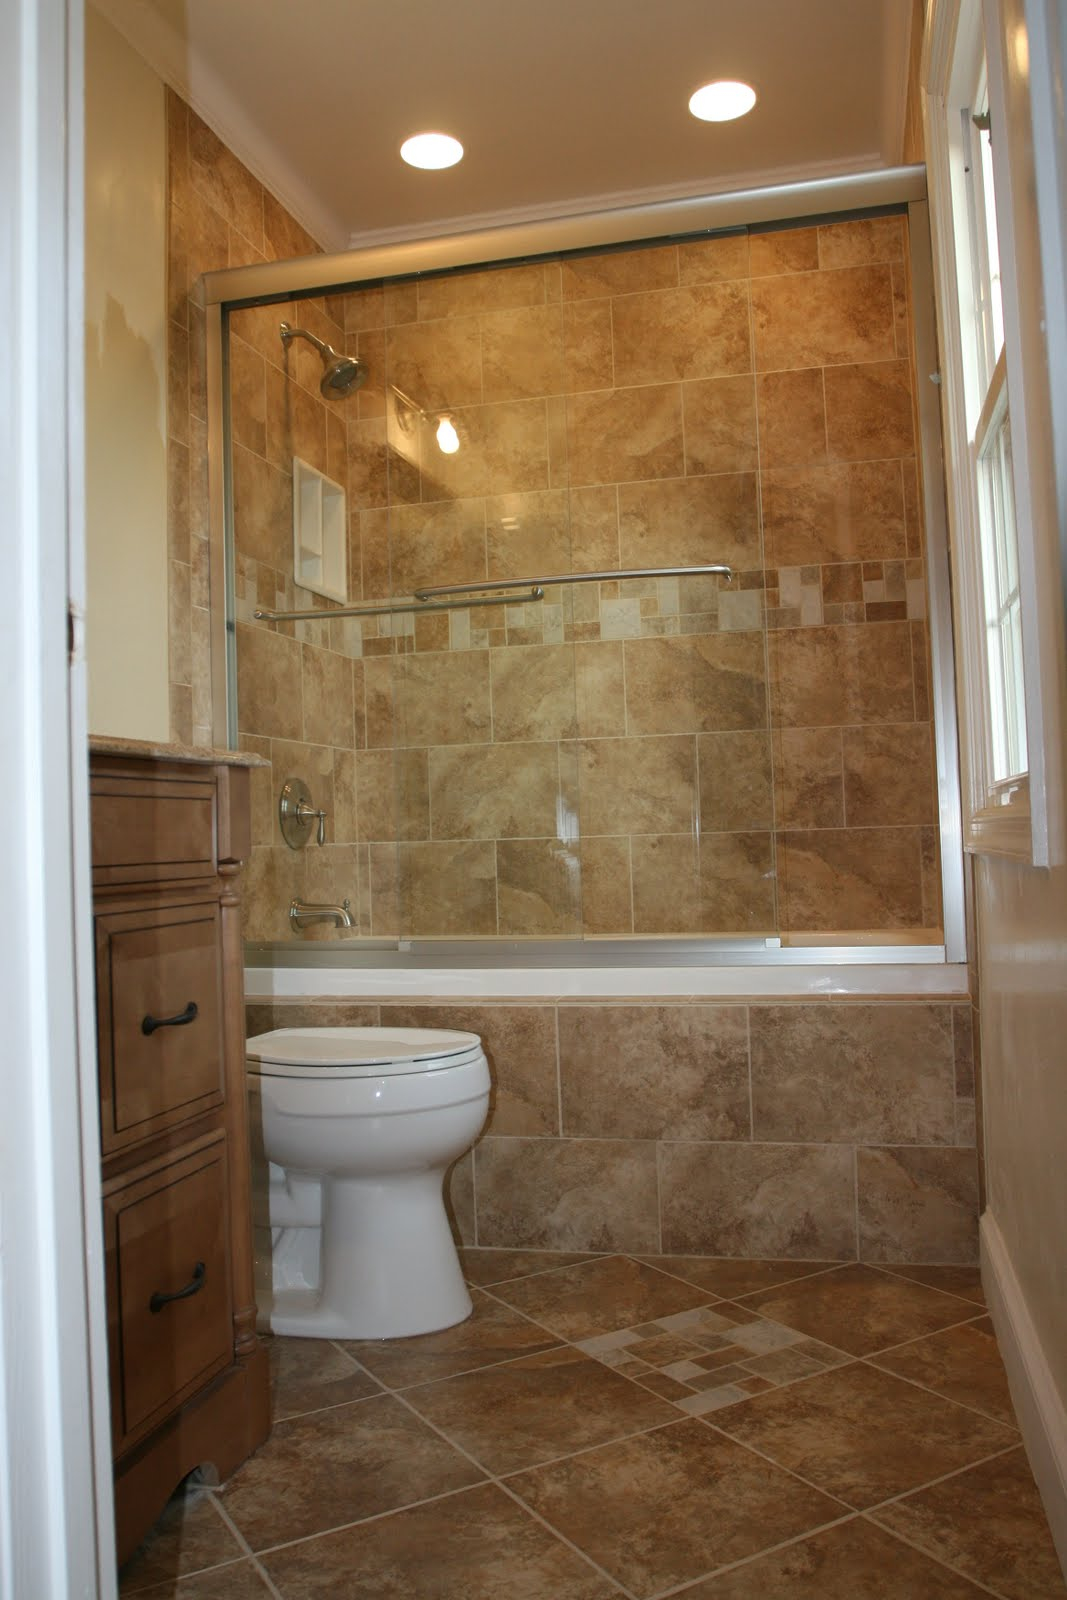 Bathroom remodeling design ideas tile shower niches Master bathroom remodeling ideas